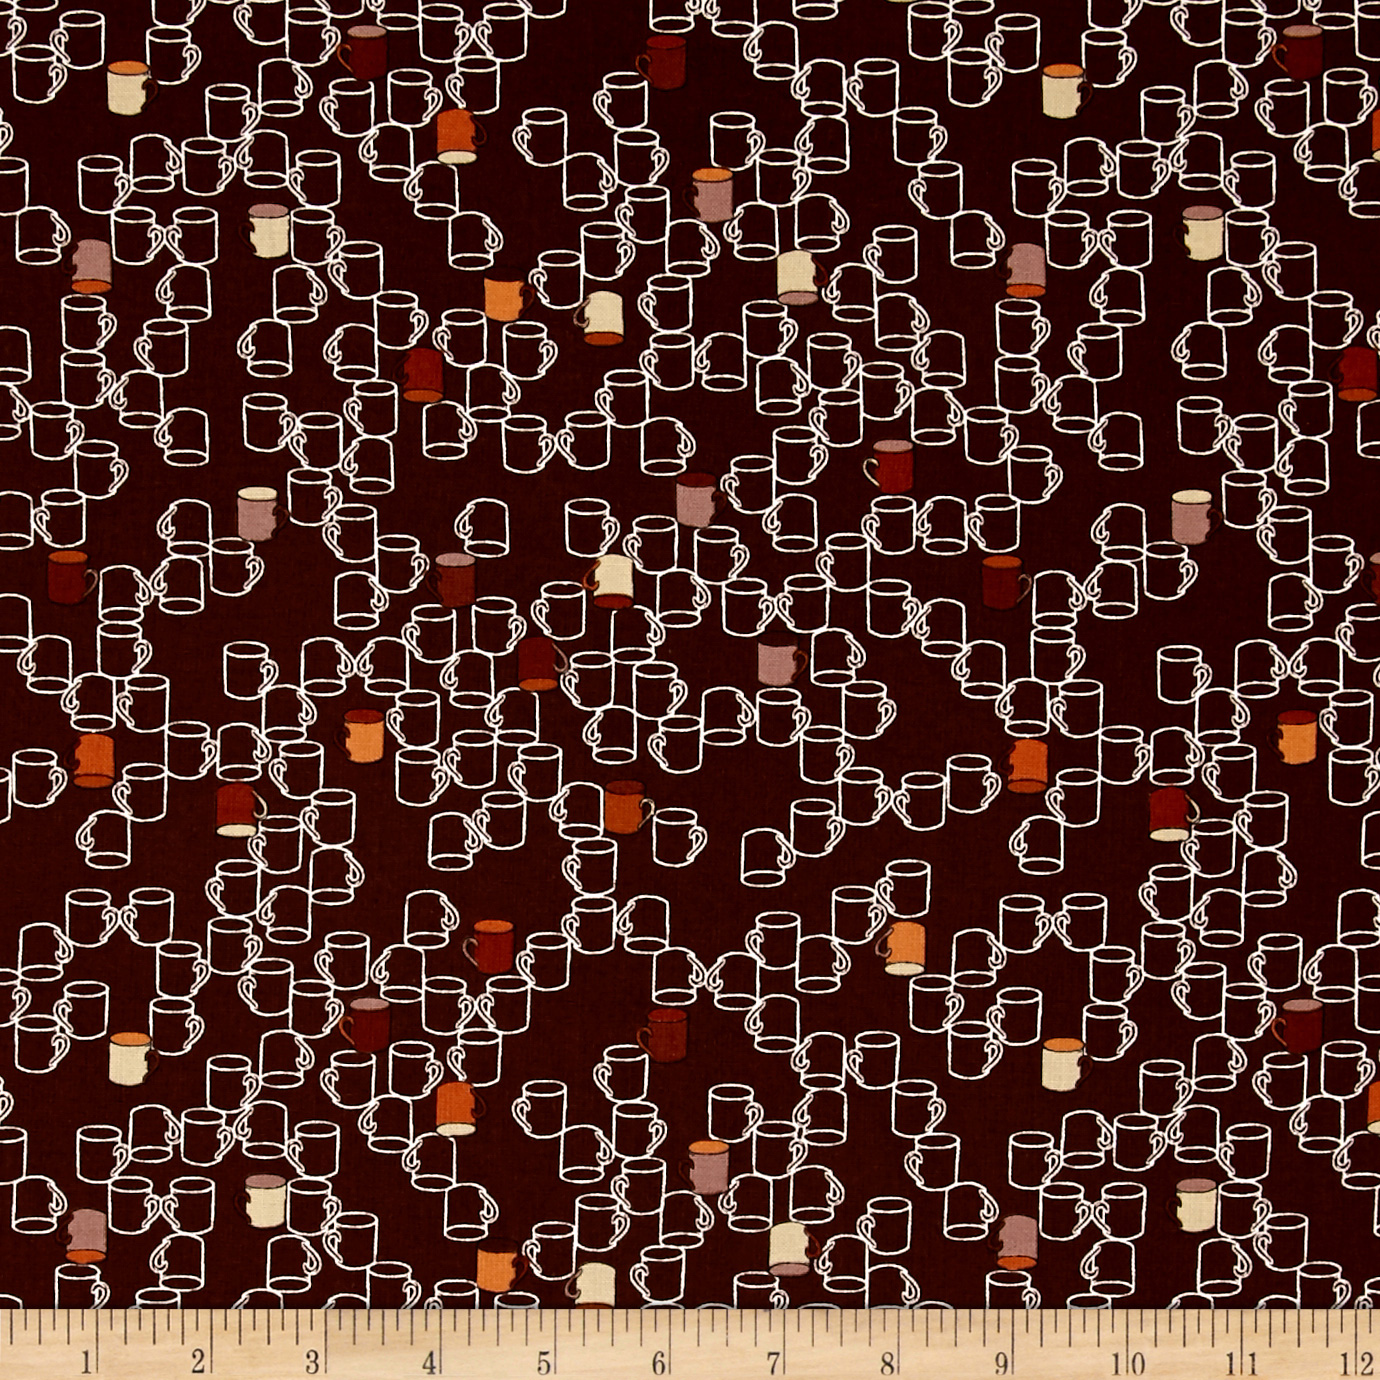 Image of Take a Break Coffee Mugs Brown Fabric